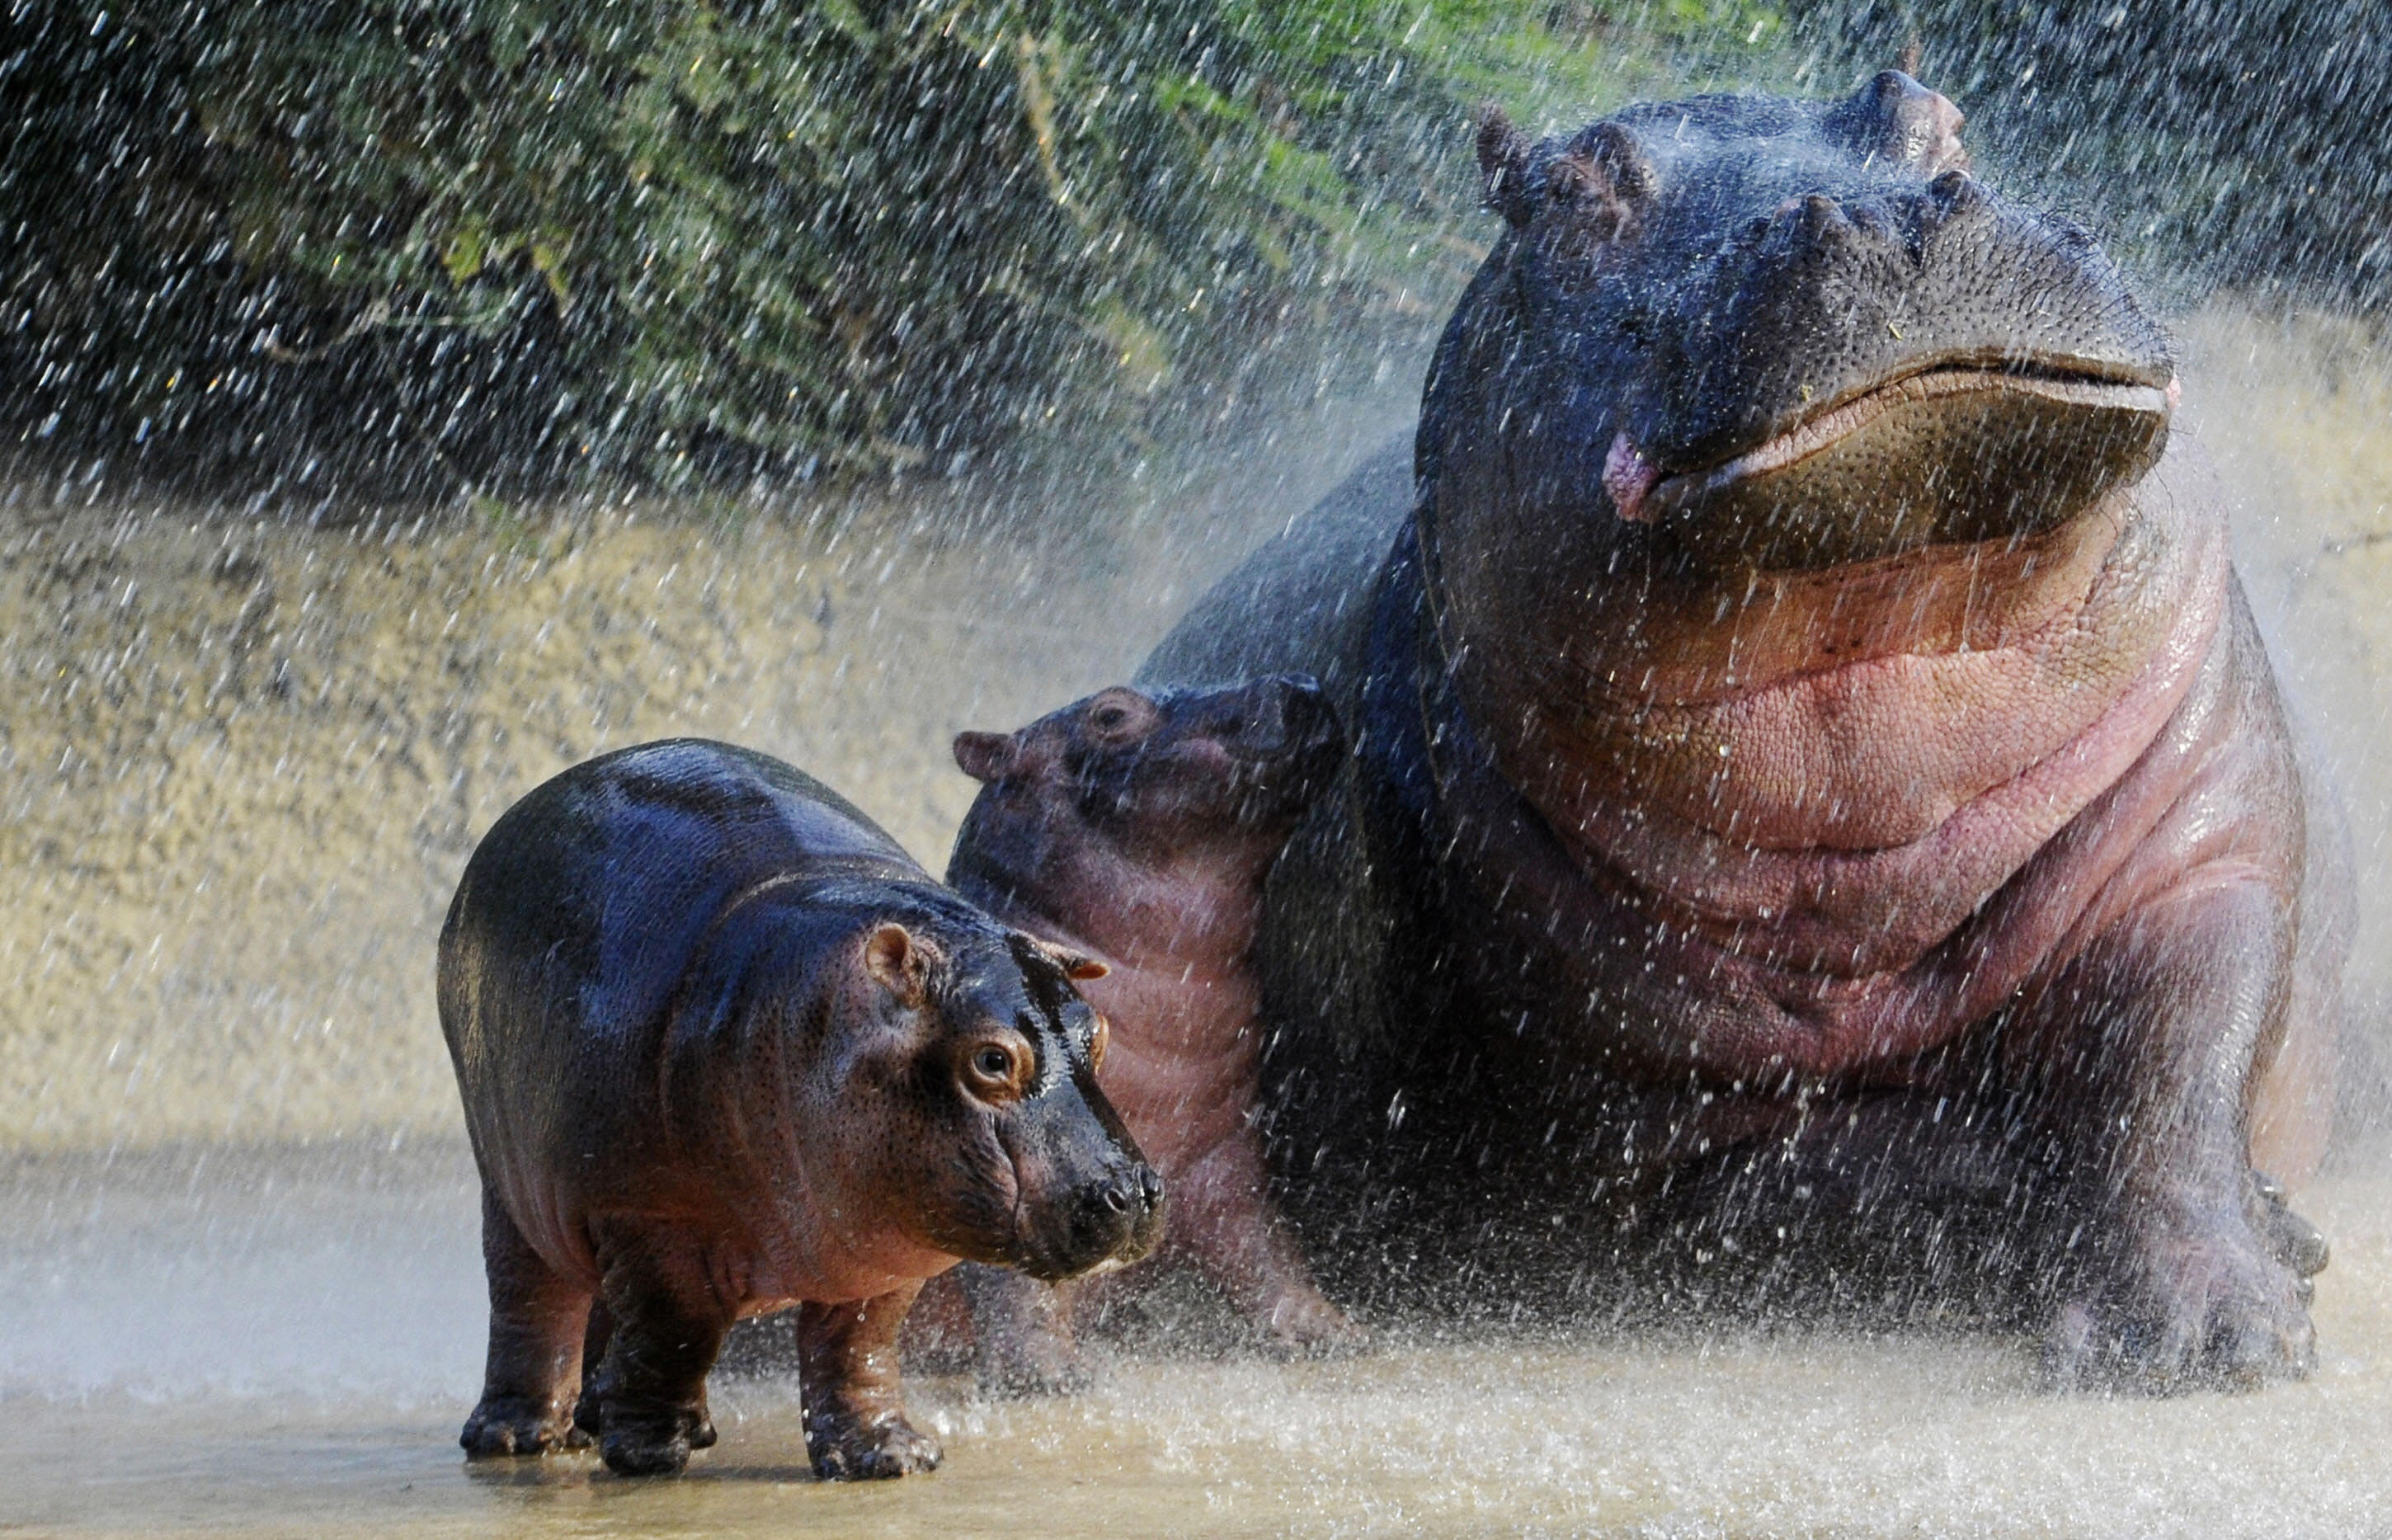 animal hippo wallpaper 1600x1200 - photo #19